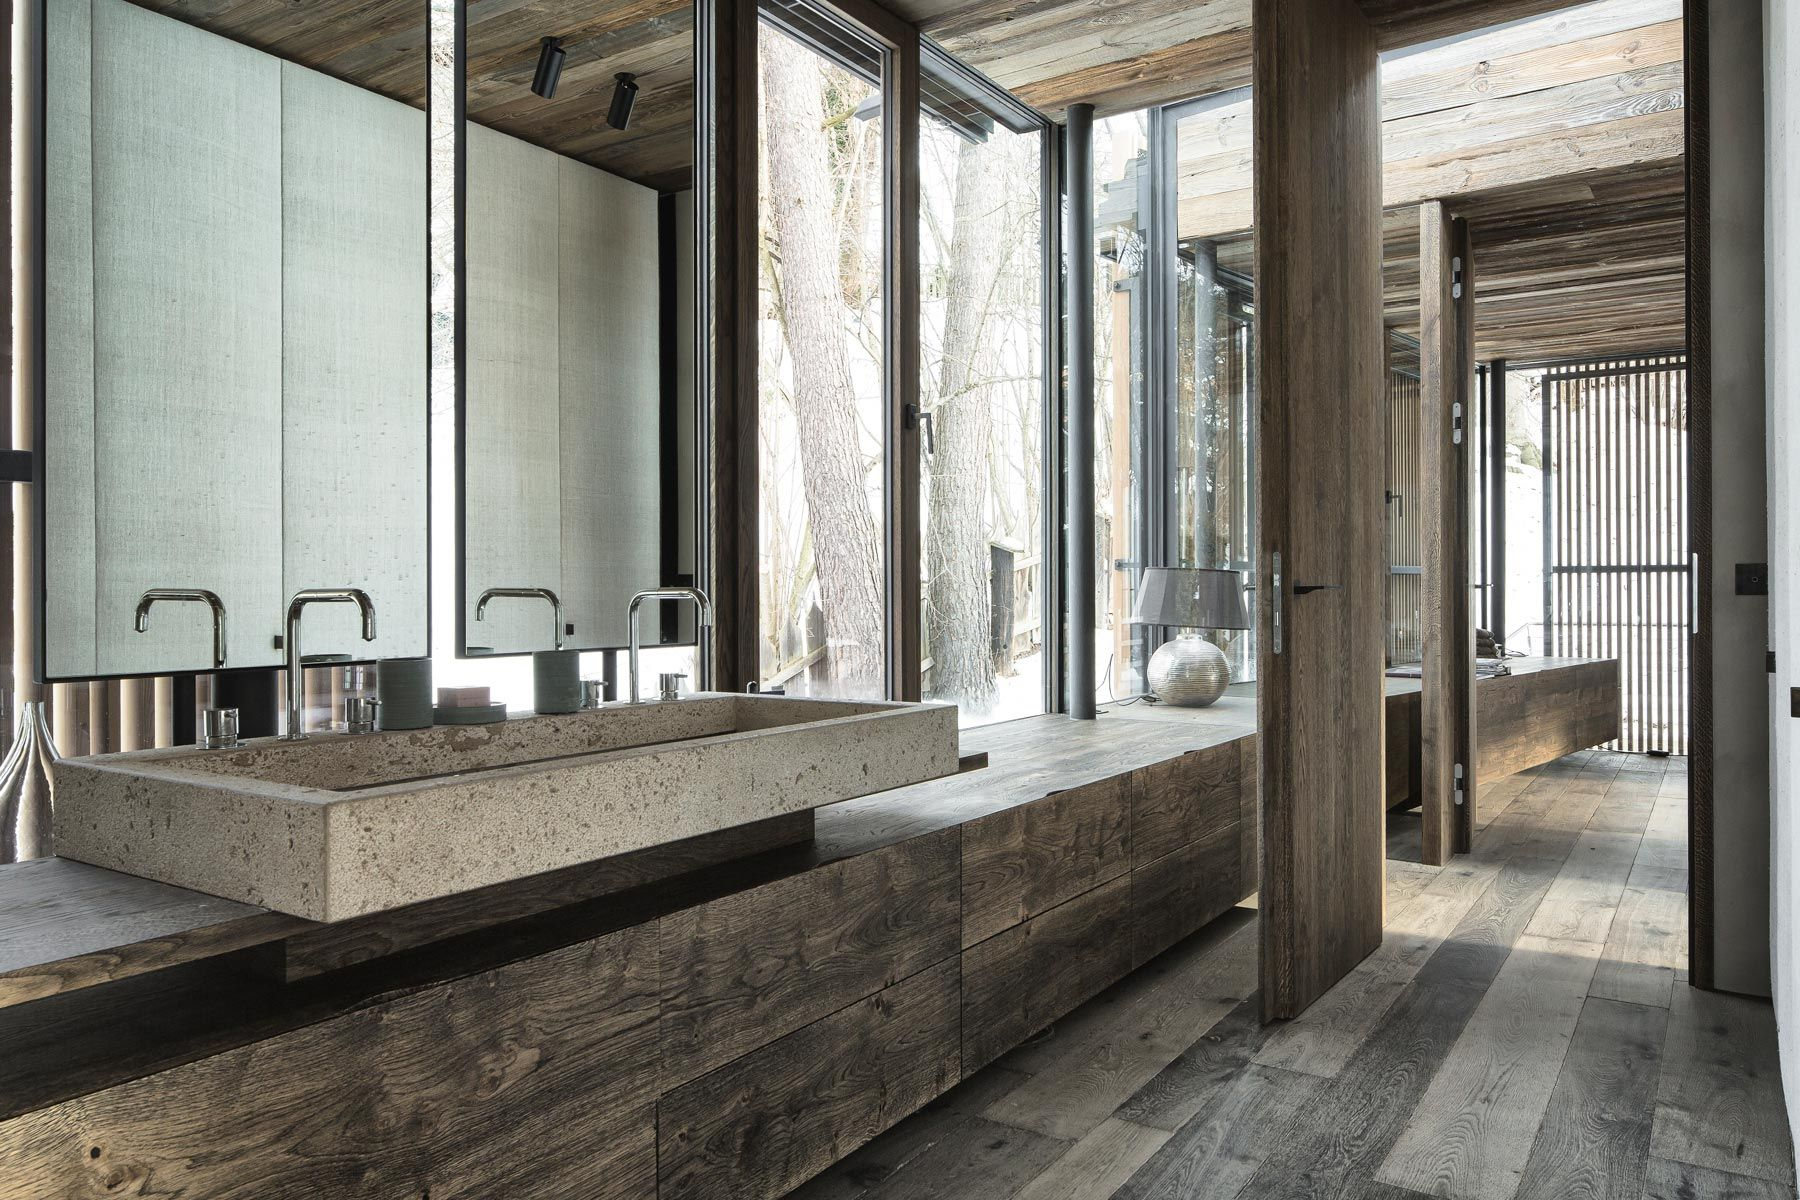 Modern wood and glass bathroom (is the sink made of concrete?)